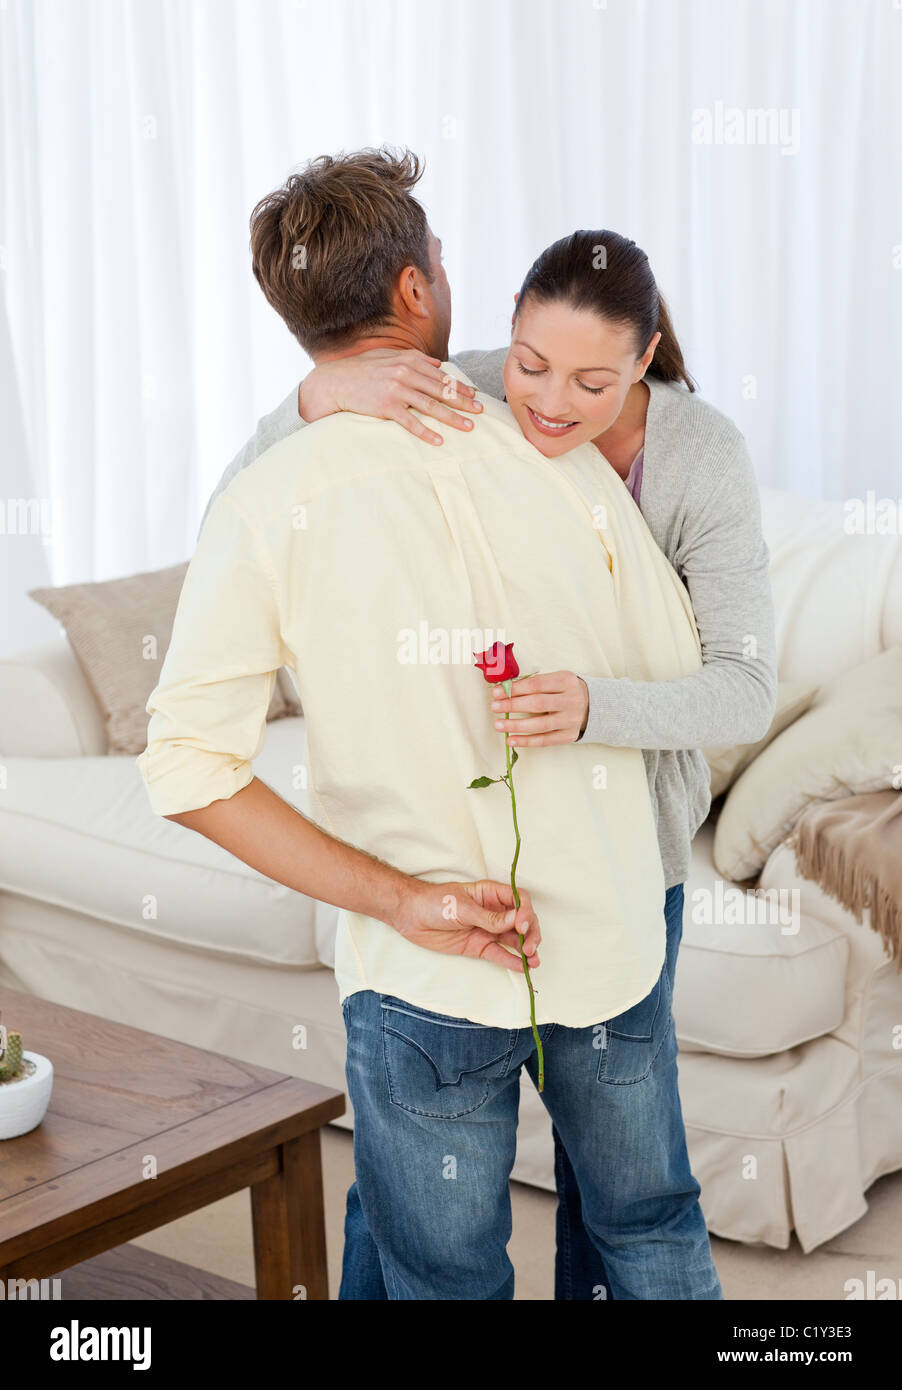 Hasty woman looking at rose hidden behind her boyfriend - Stock Image